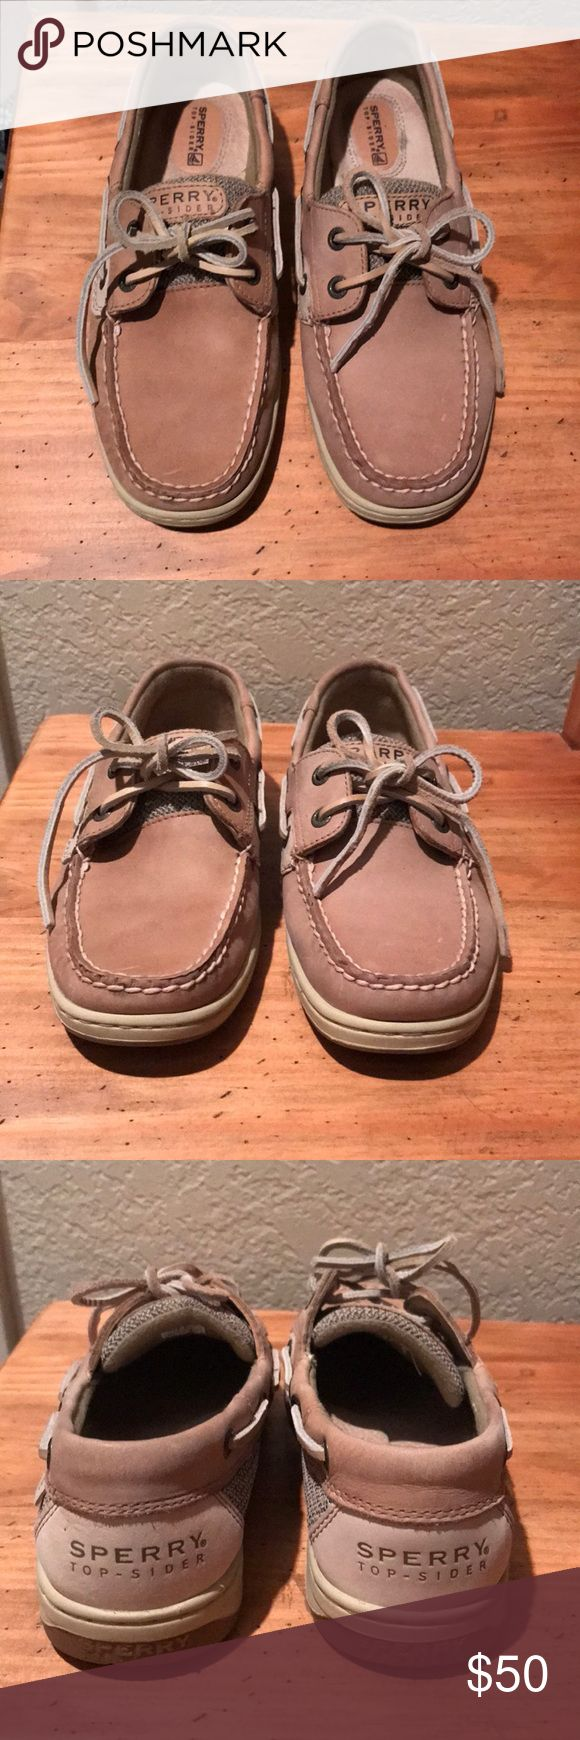 Sperry Top-Sider Shoes Sperry Top-Sider Boat/Deck Shoes. Excellent like new condition. Small mark on one shoe near toe (see first photo). Very comfortable. Tan. Size 7. Sperry Top-Sider Shoes Flats & Loafers